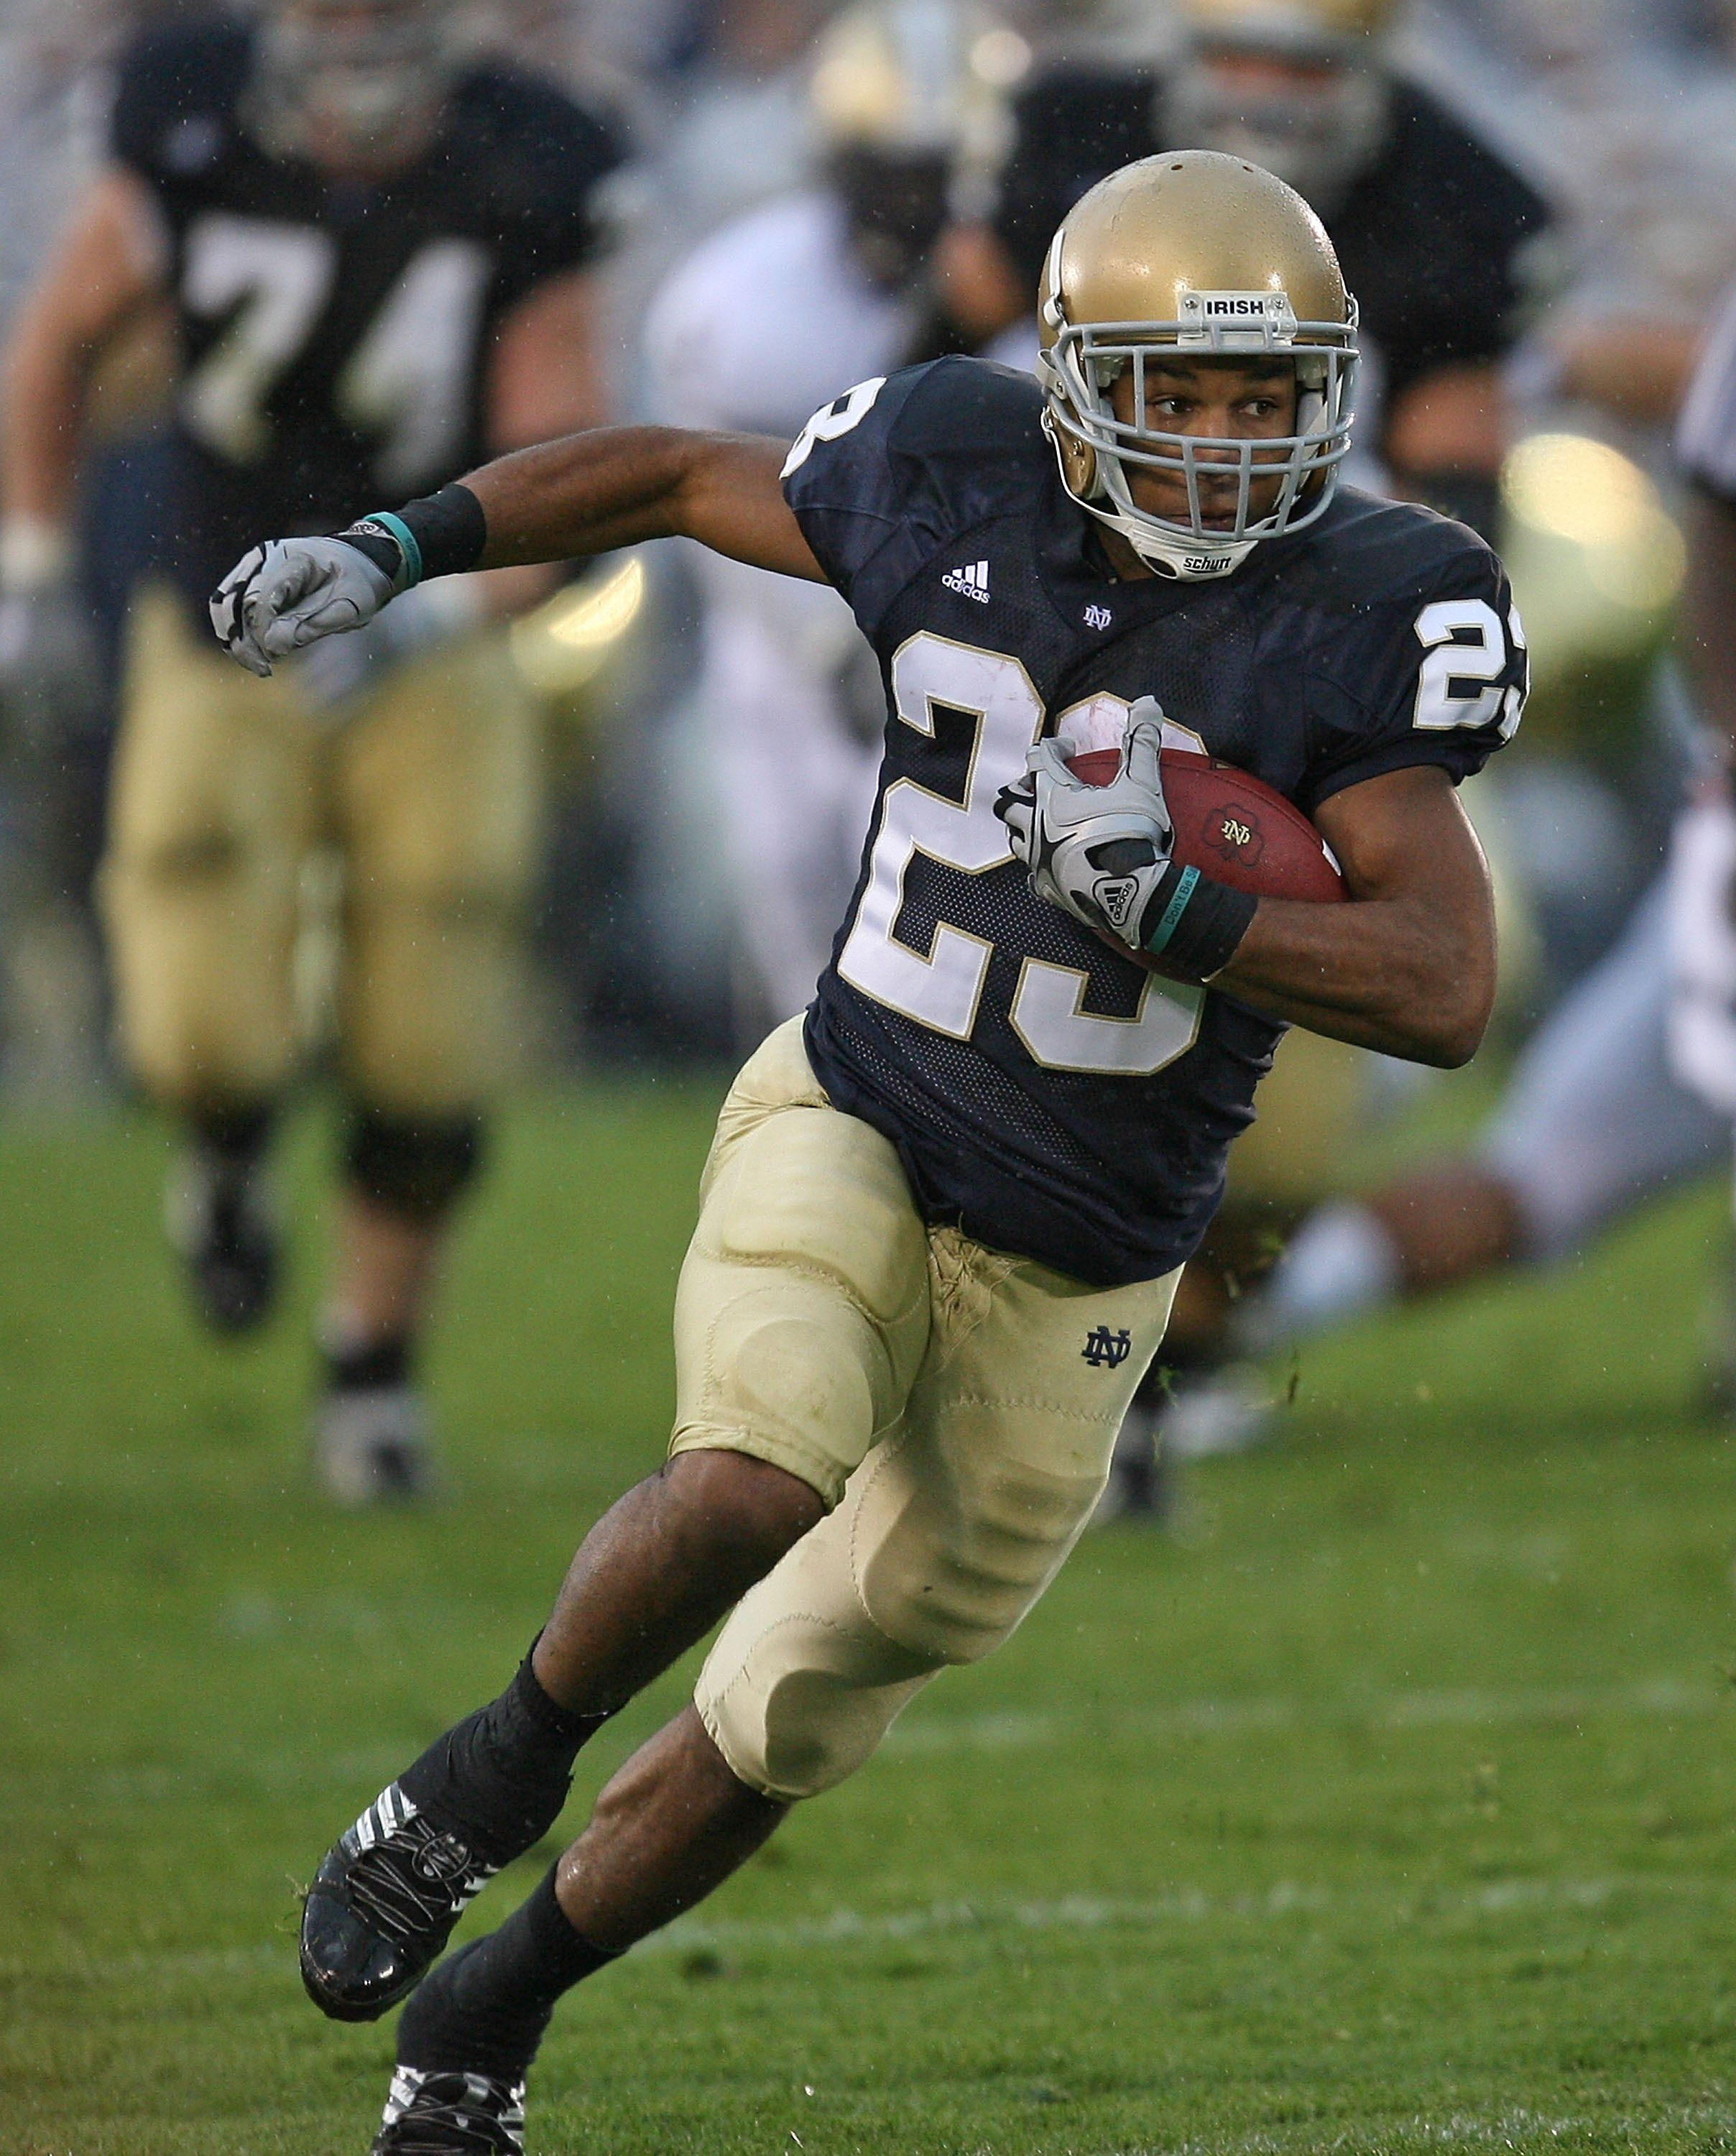 SOUTH BEND, IN - OCTOBER 03: Golden Tate #23 of the Notre Dame Fighting Irish runs against the Washington Huskies on his way to a 67 yard touchdown on October 3, 2009 at Notre Dame Stadium in South Bend, Indiana. (Photo by Jonathan Daniel/Getty Images)